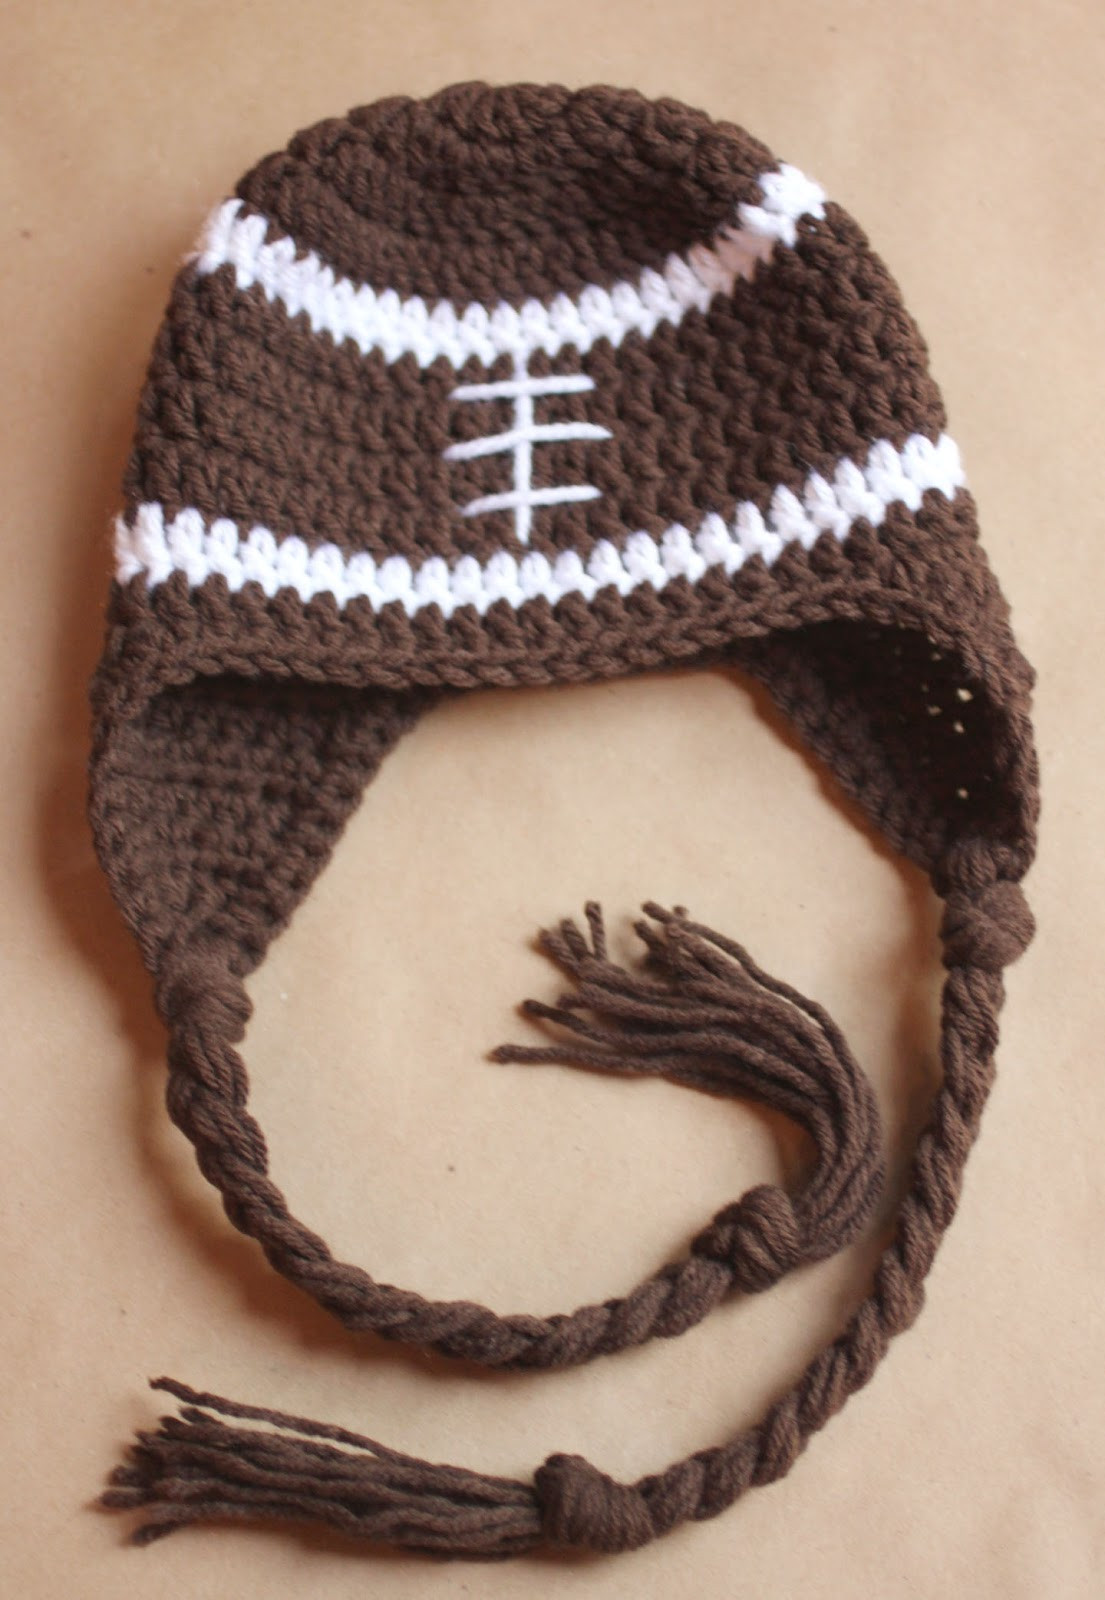 Hat Patterns Luxury Crochet Football Earflap Hat Pattern Repeat Crafter Me Of Luxury 49 Pictures Hat Patterns